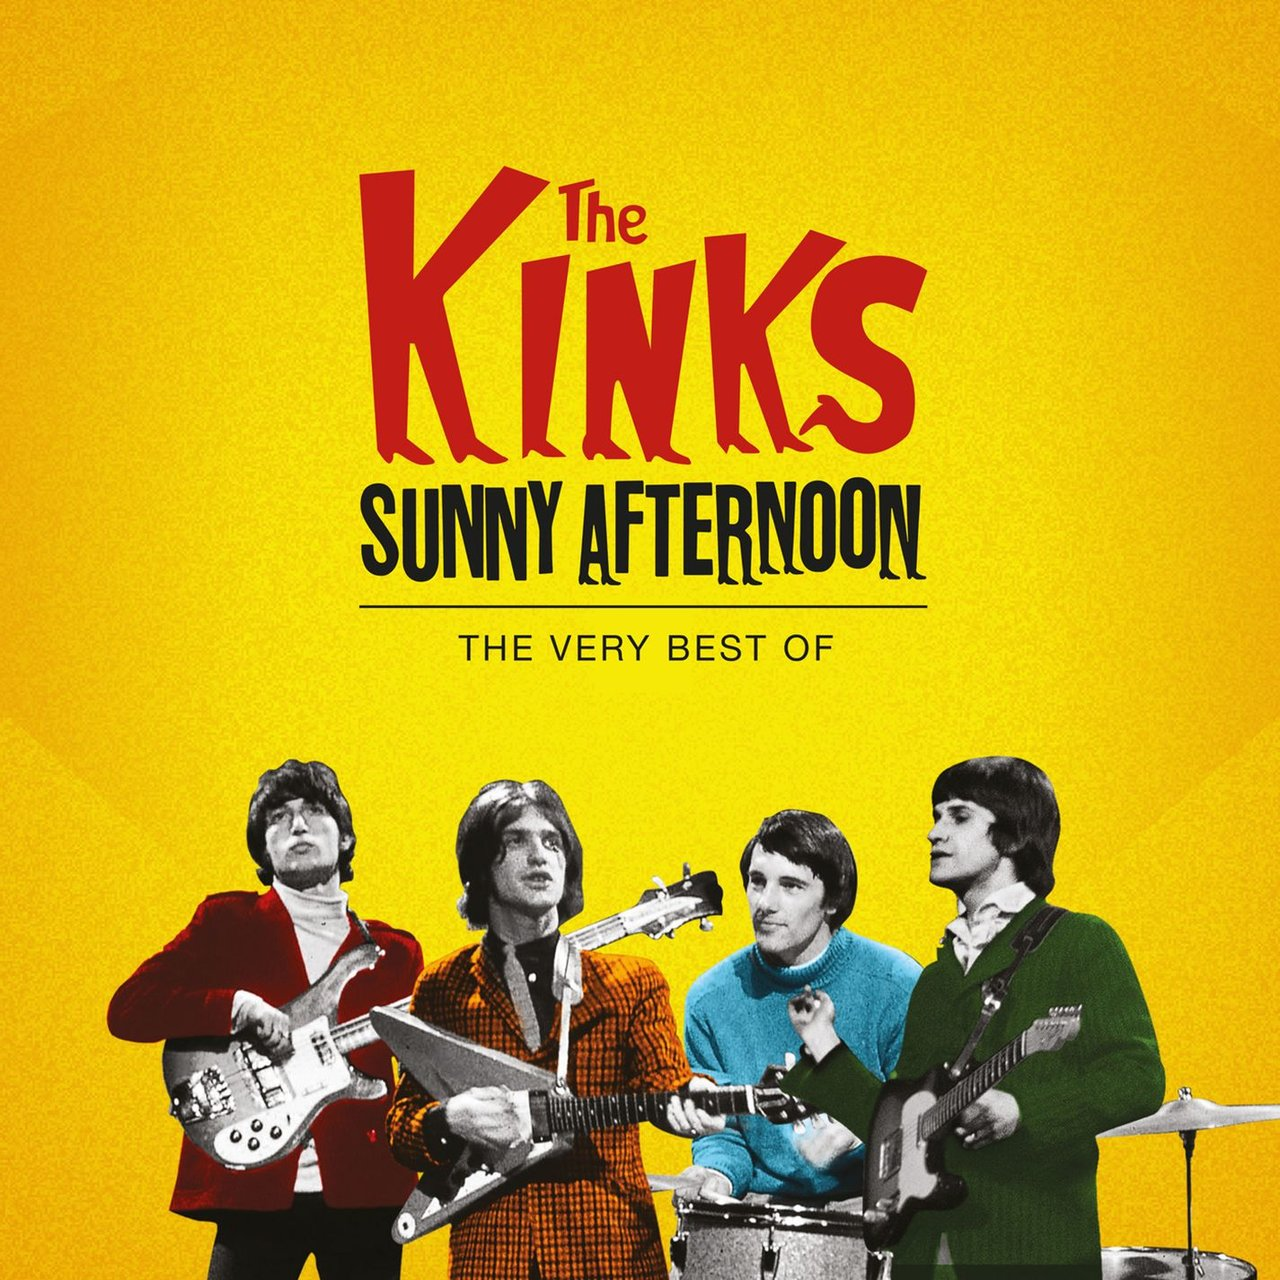 TIDAL: Listen to The Kinks on TIDAL